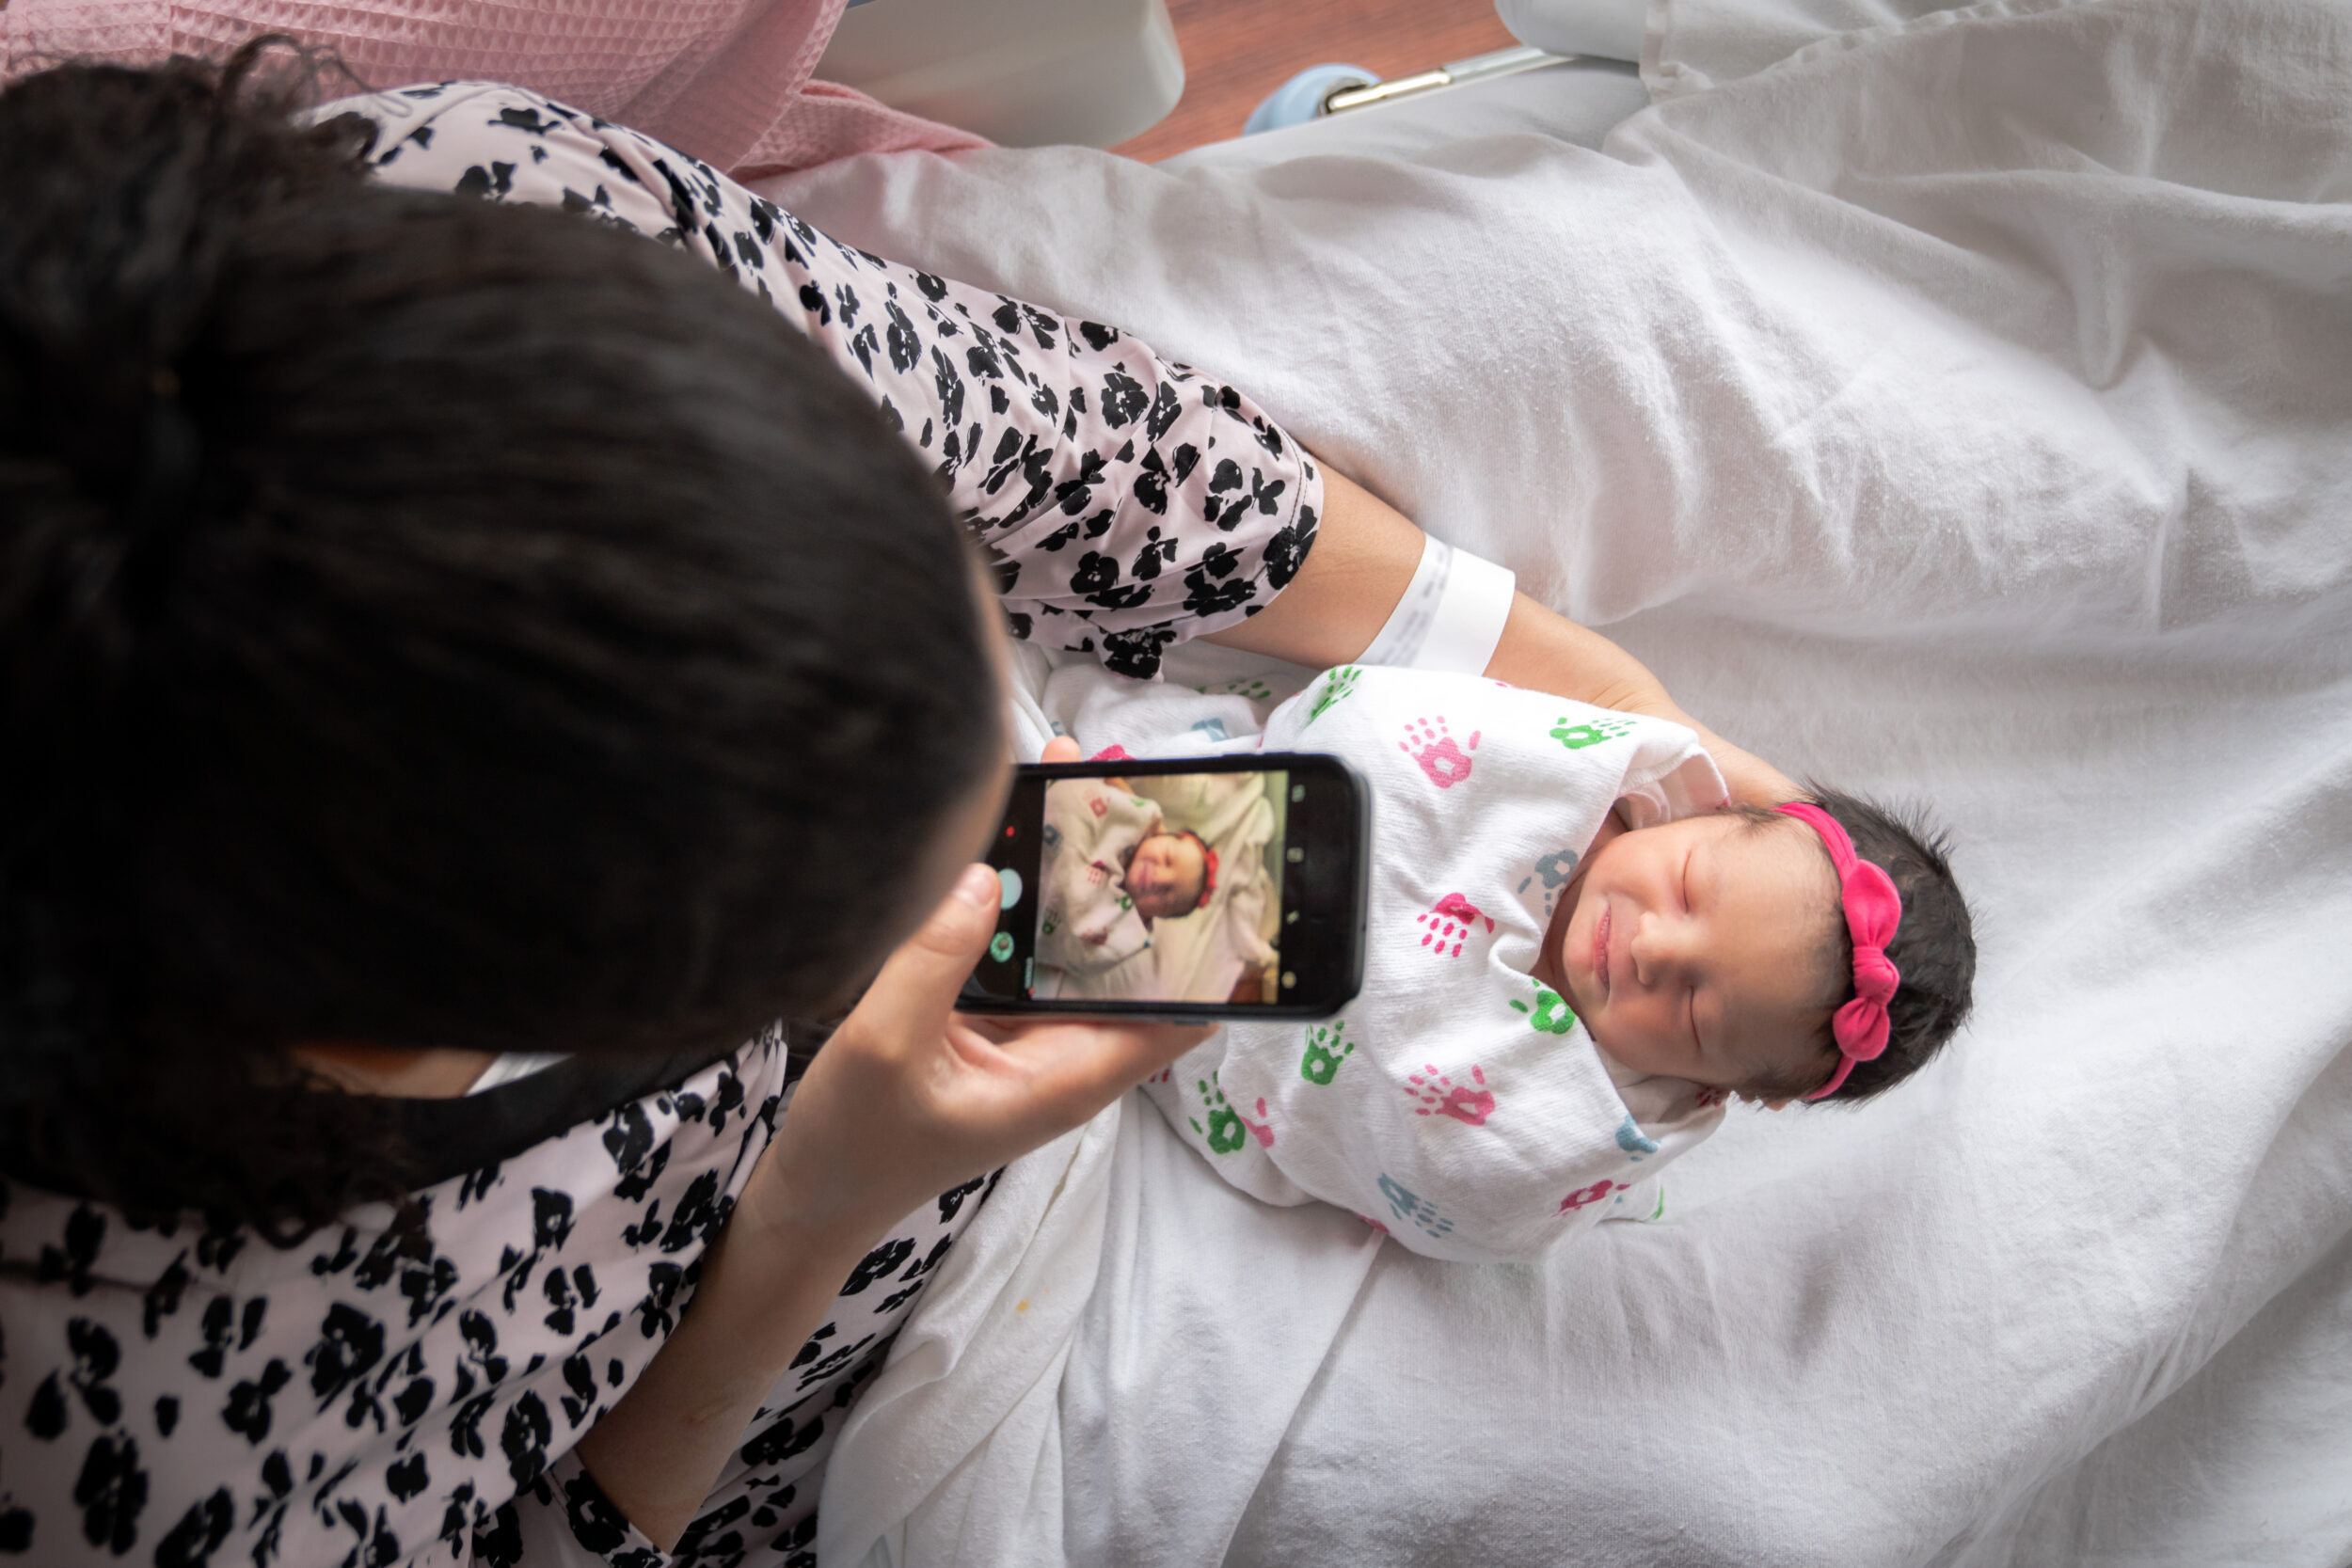 Taking pictures of new baby